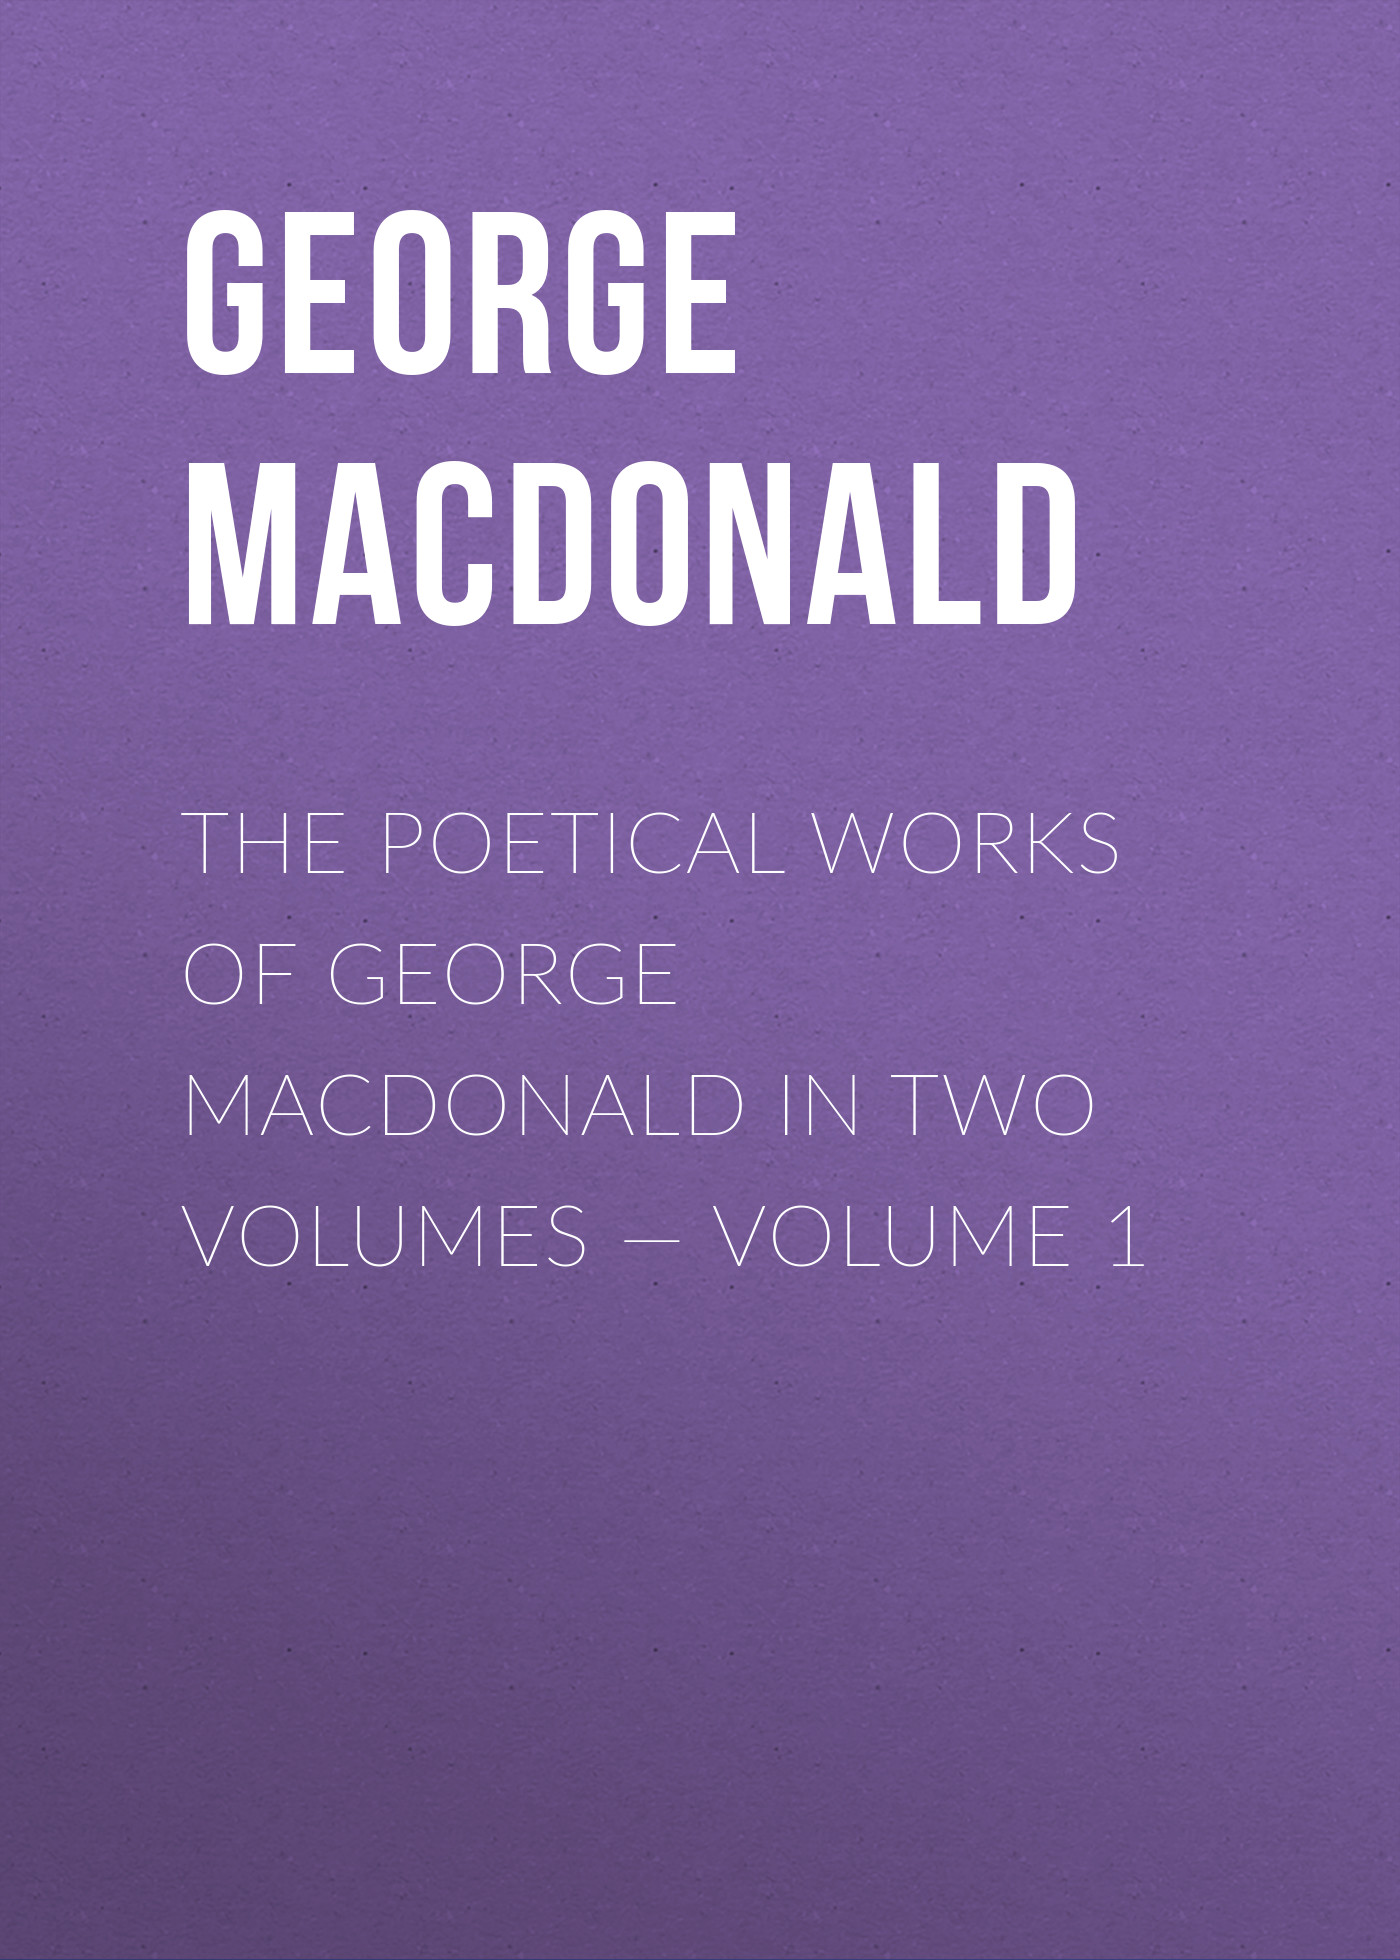 George MacDonald The poetical works of George MacDonald in two volumes — Volume 1 george macdonald the poetical works of george macdonald in two volumes volume 1